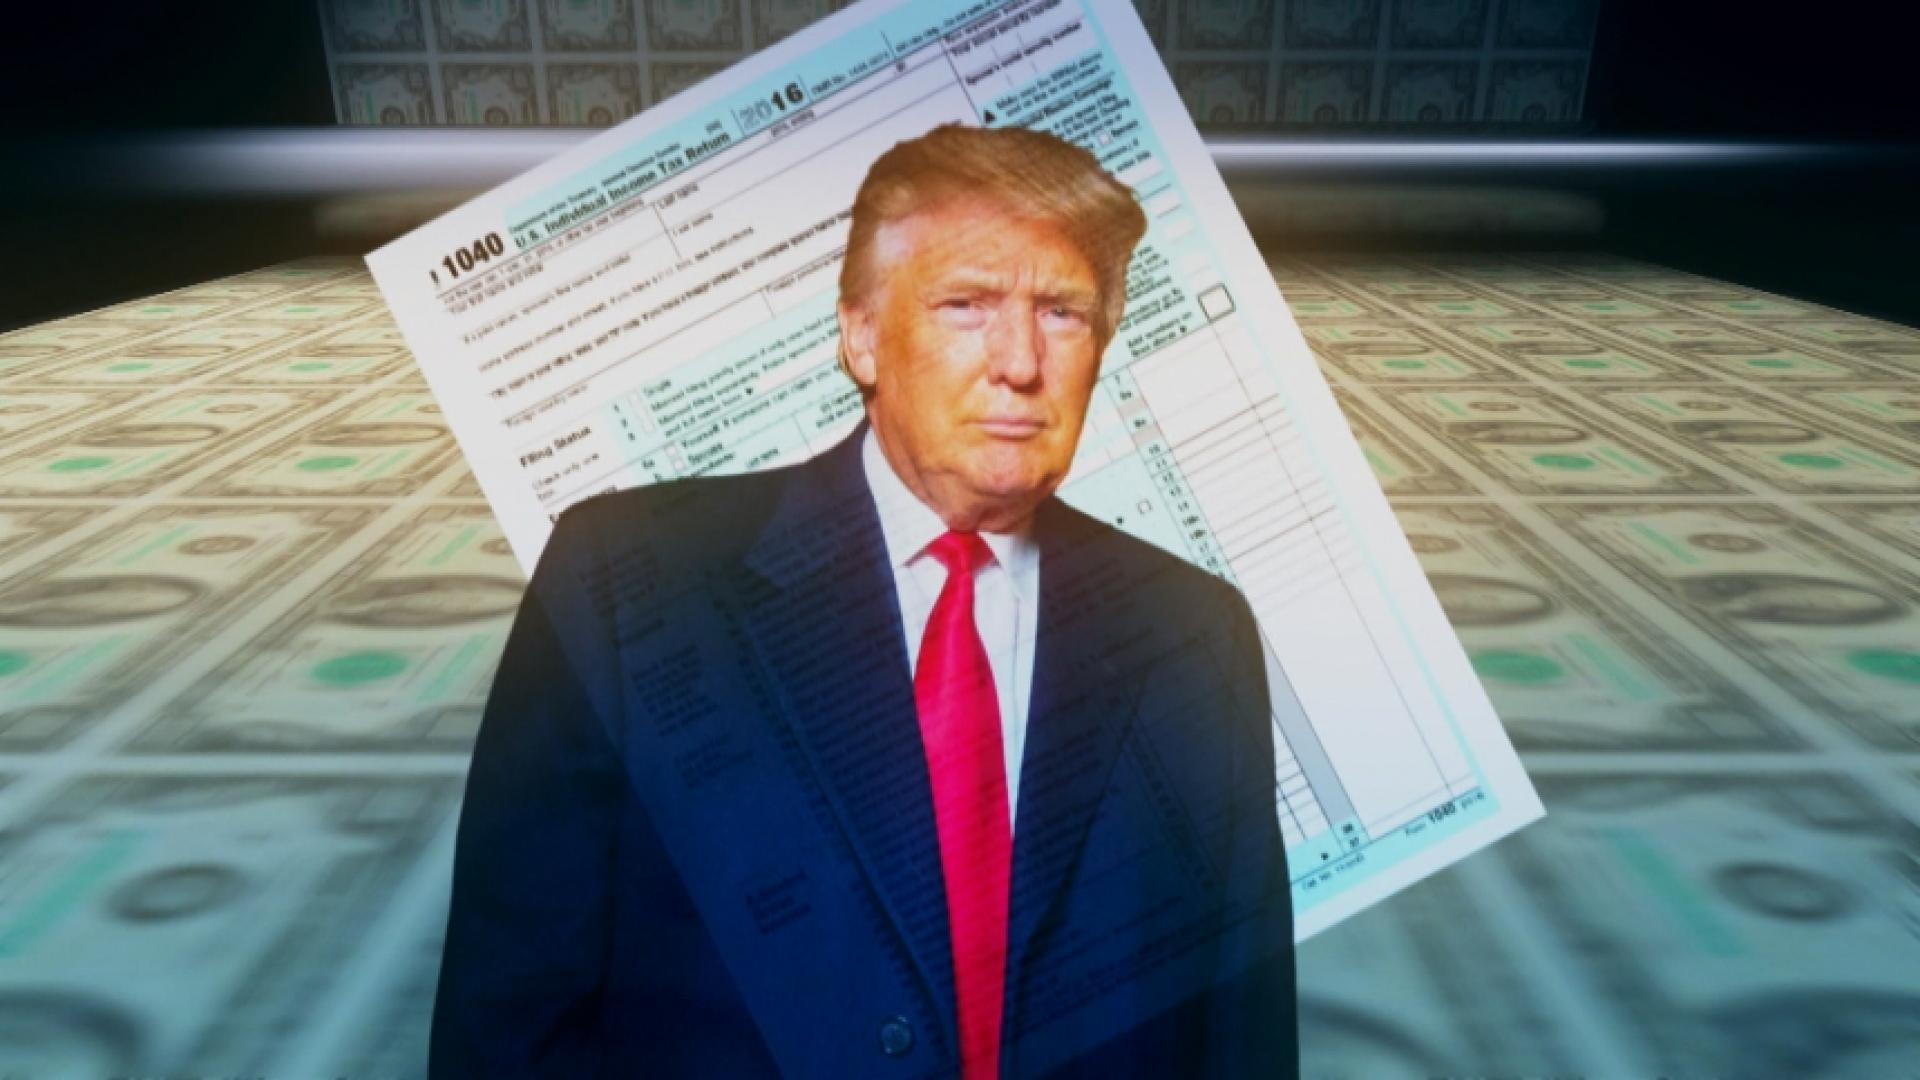 New York Times: Trump Avoided Taxes For Years – WNKY 40 News